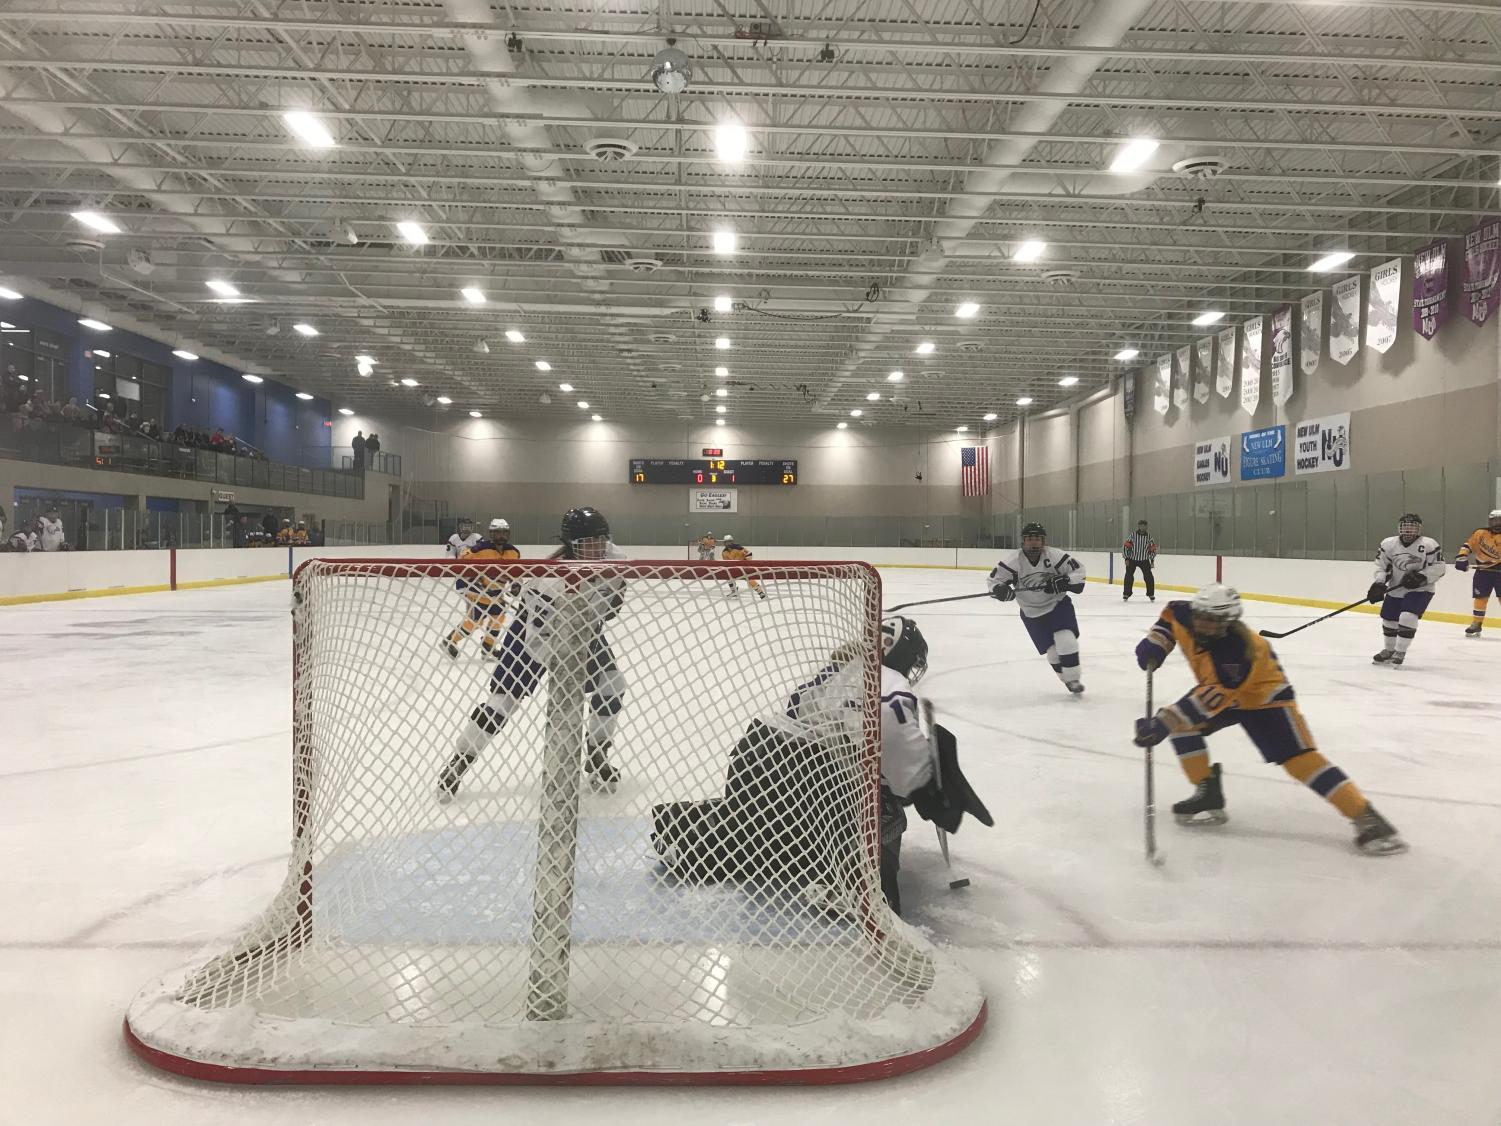 The New Ulm girls' hockey season is beginning. The team and fans are excited for another successful season.